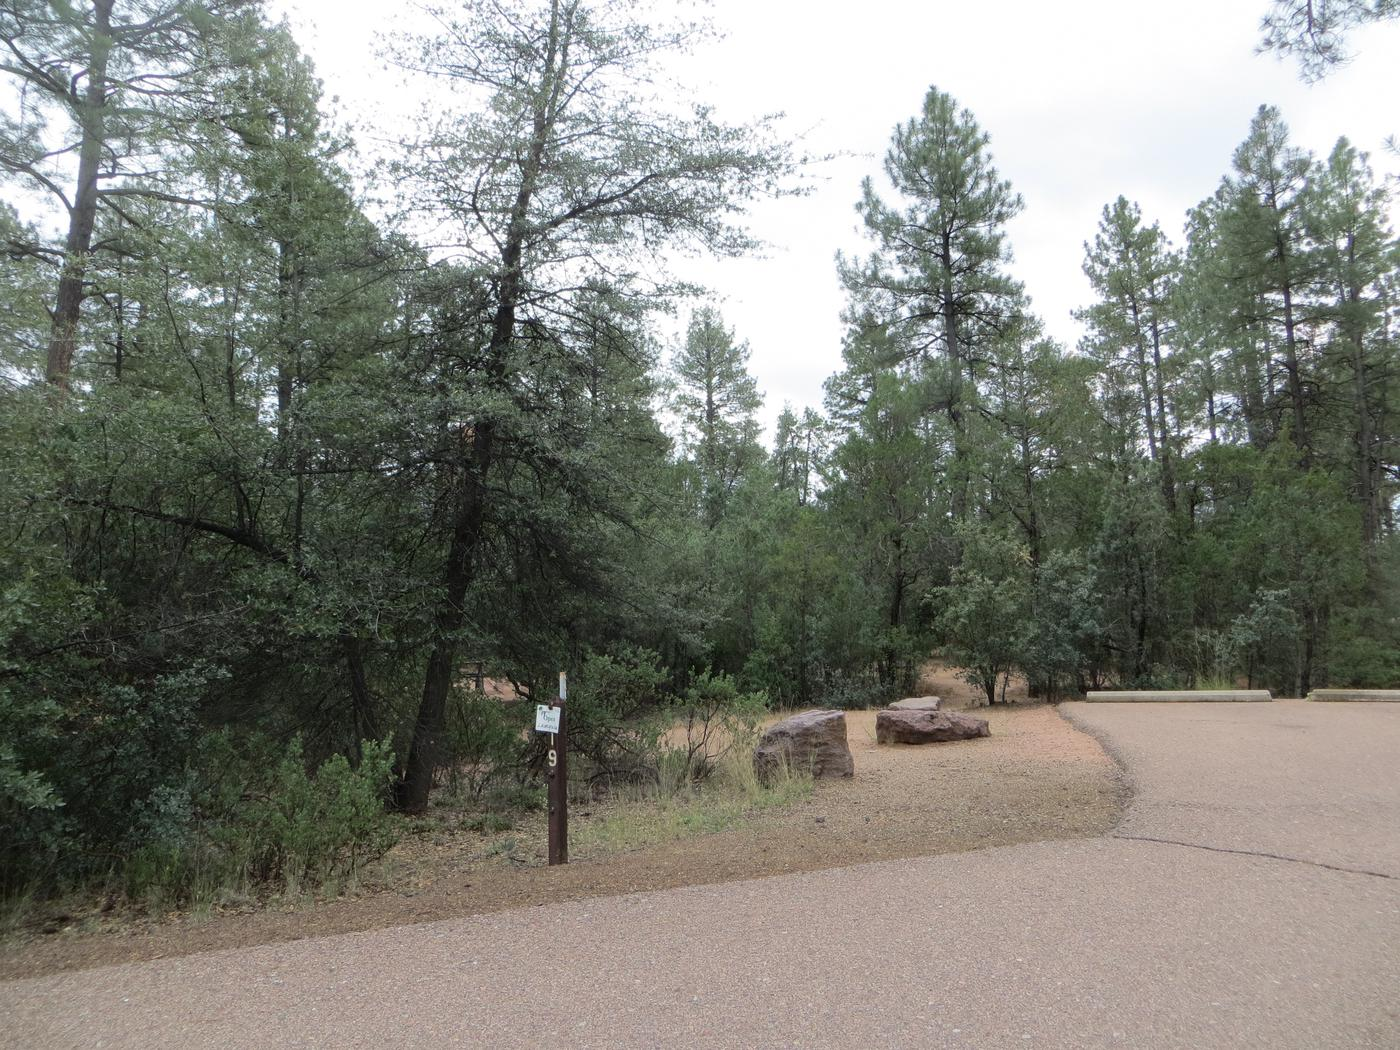 Parking space and entrance to site #19, Black Bear Loop at Houston Mesa.